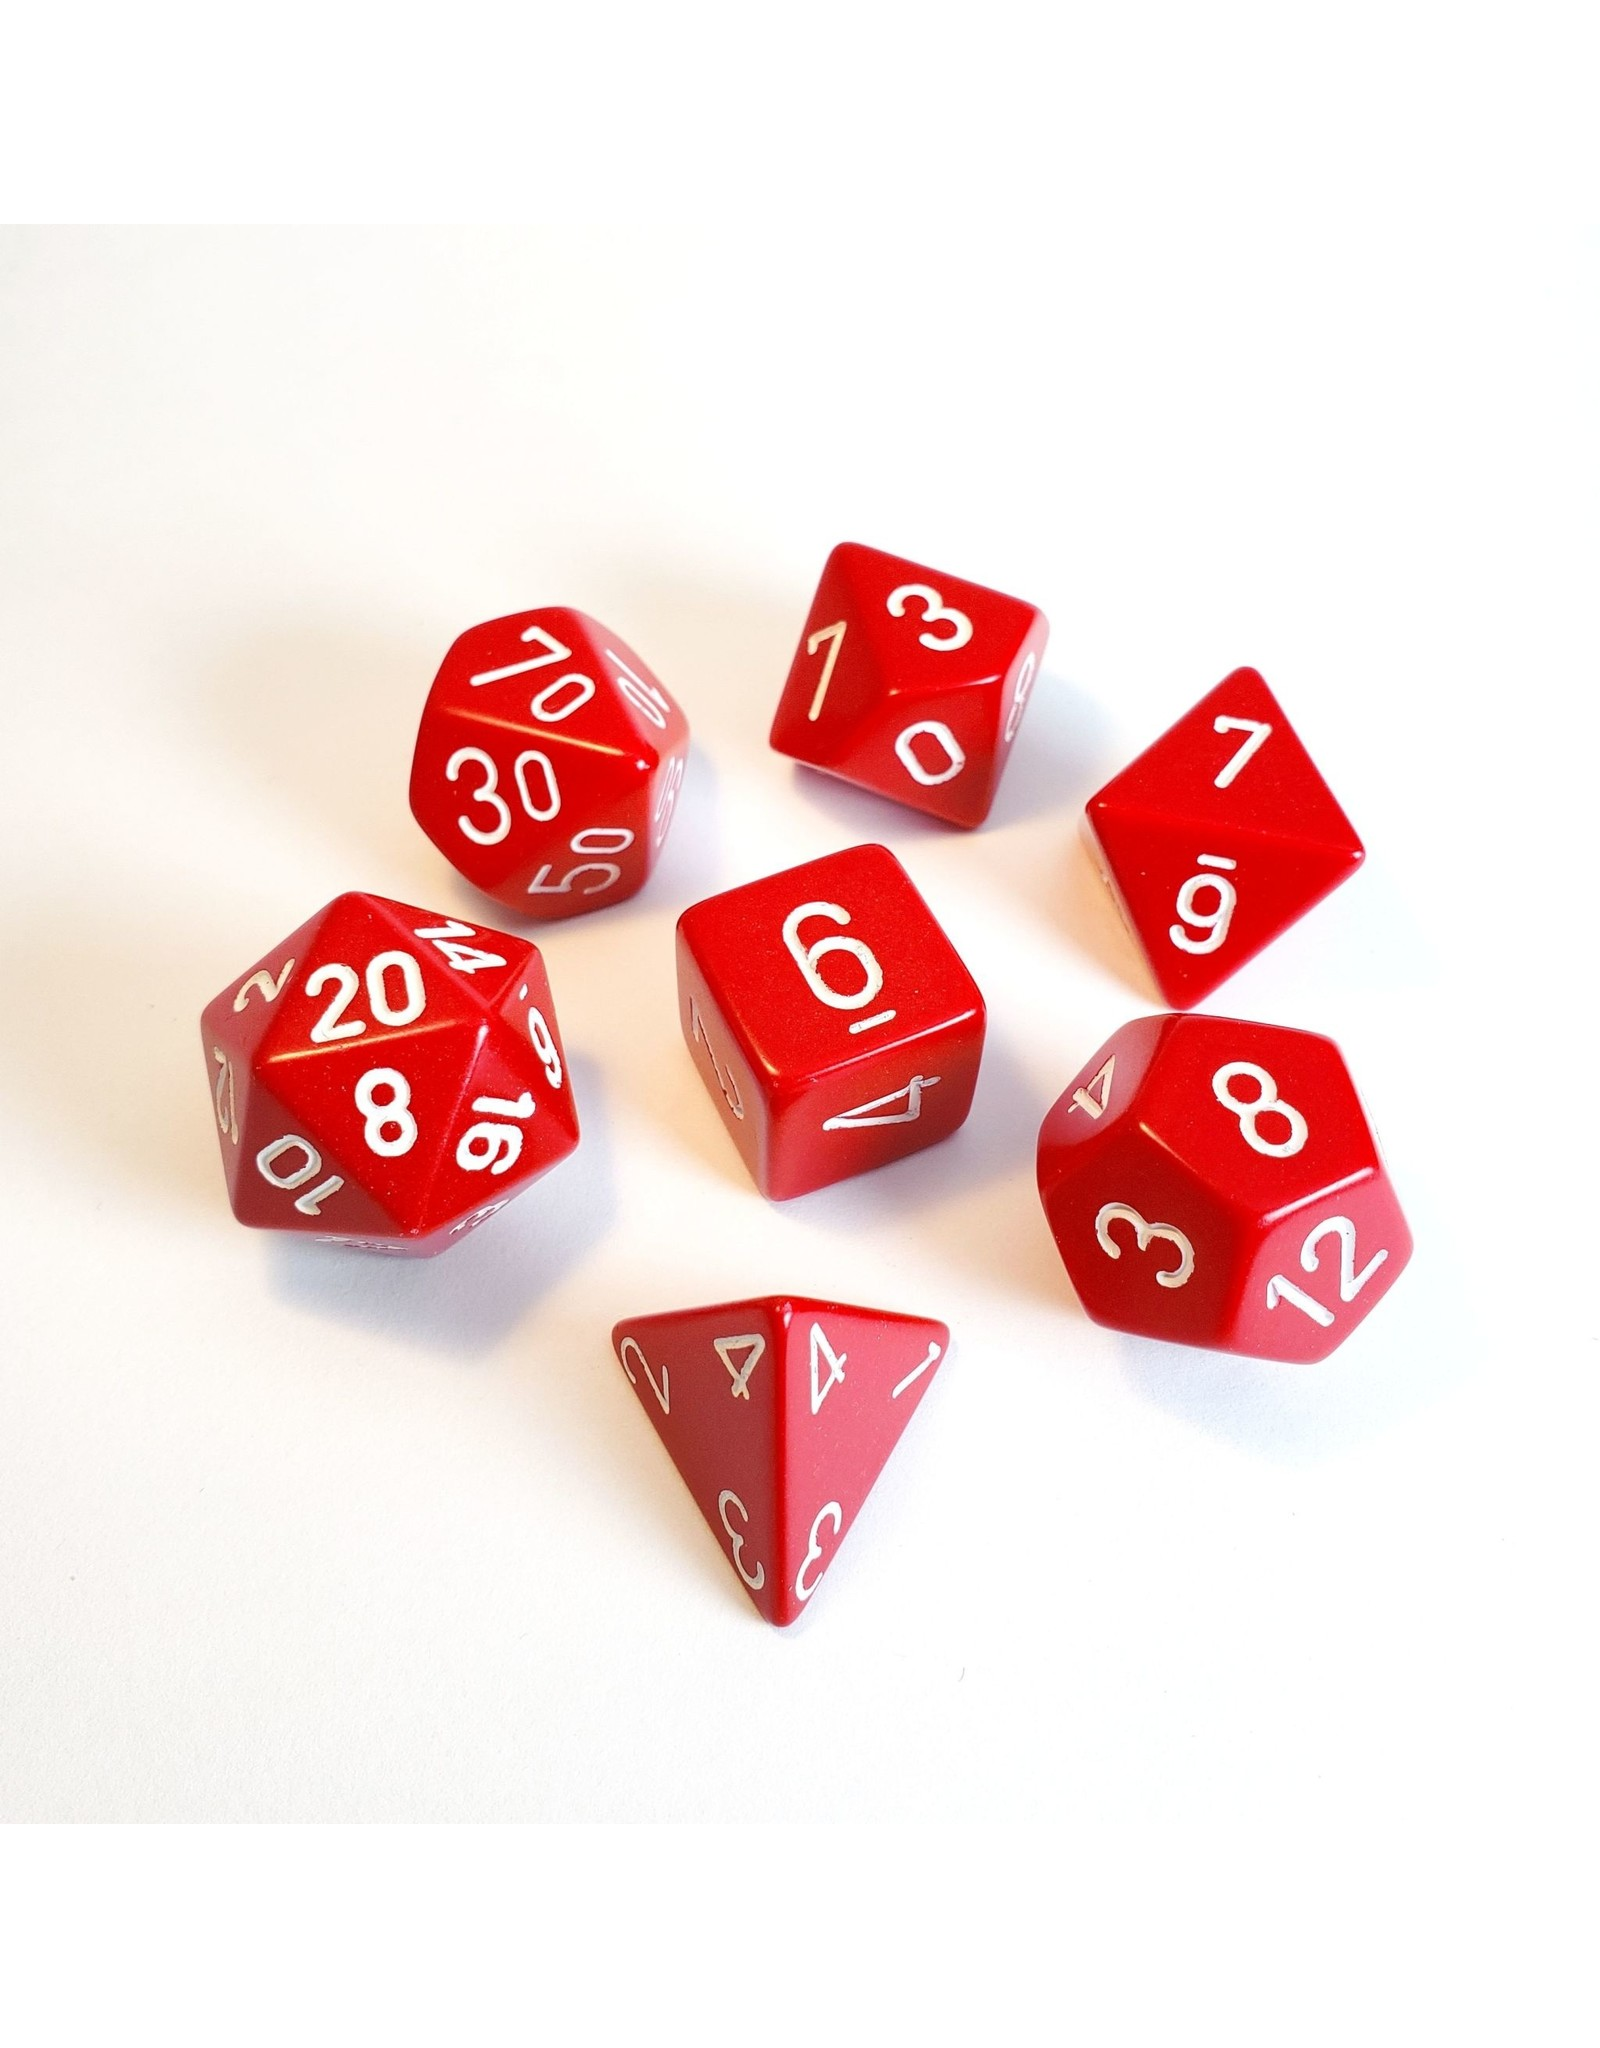 CHESSEX CHX 25404 7 PC POLY DICE SET OPAQUE RED W/ WHITE